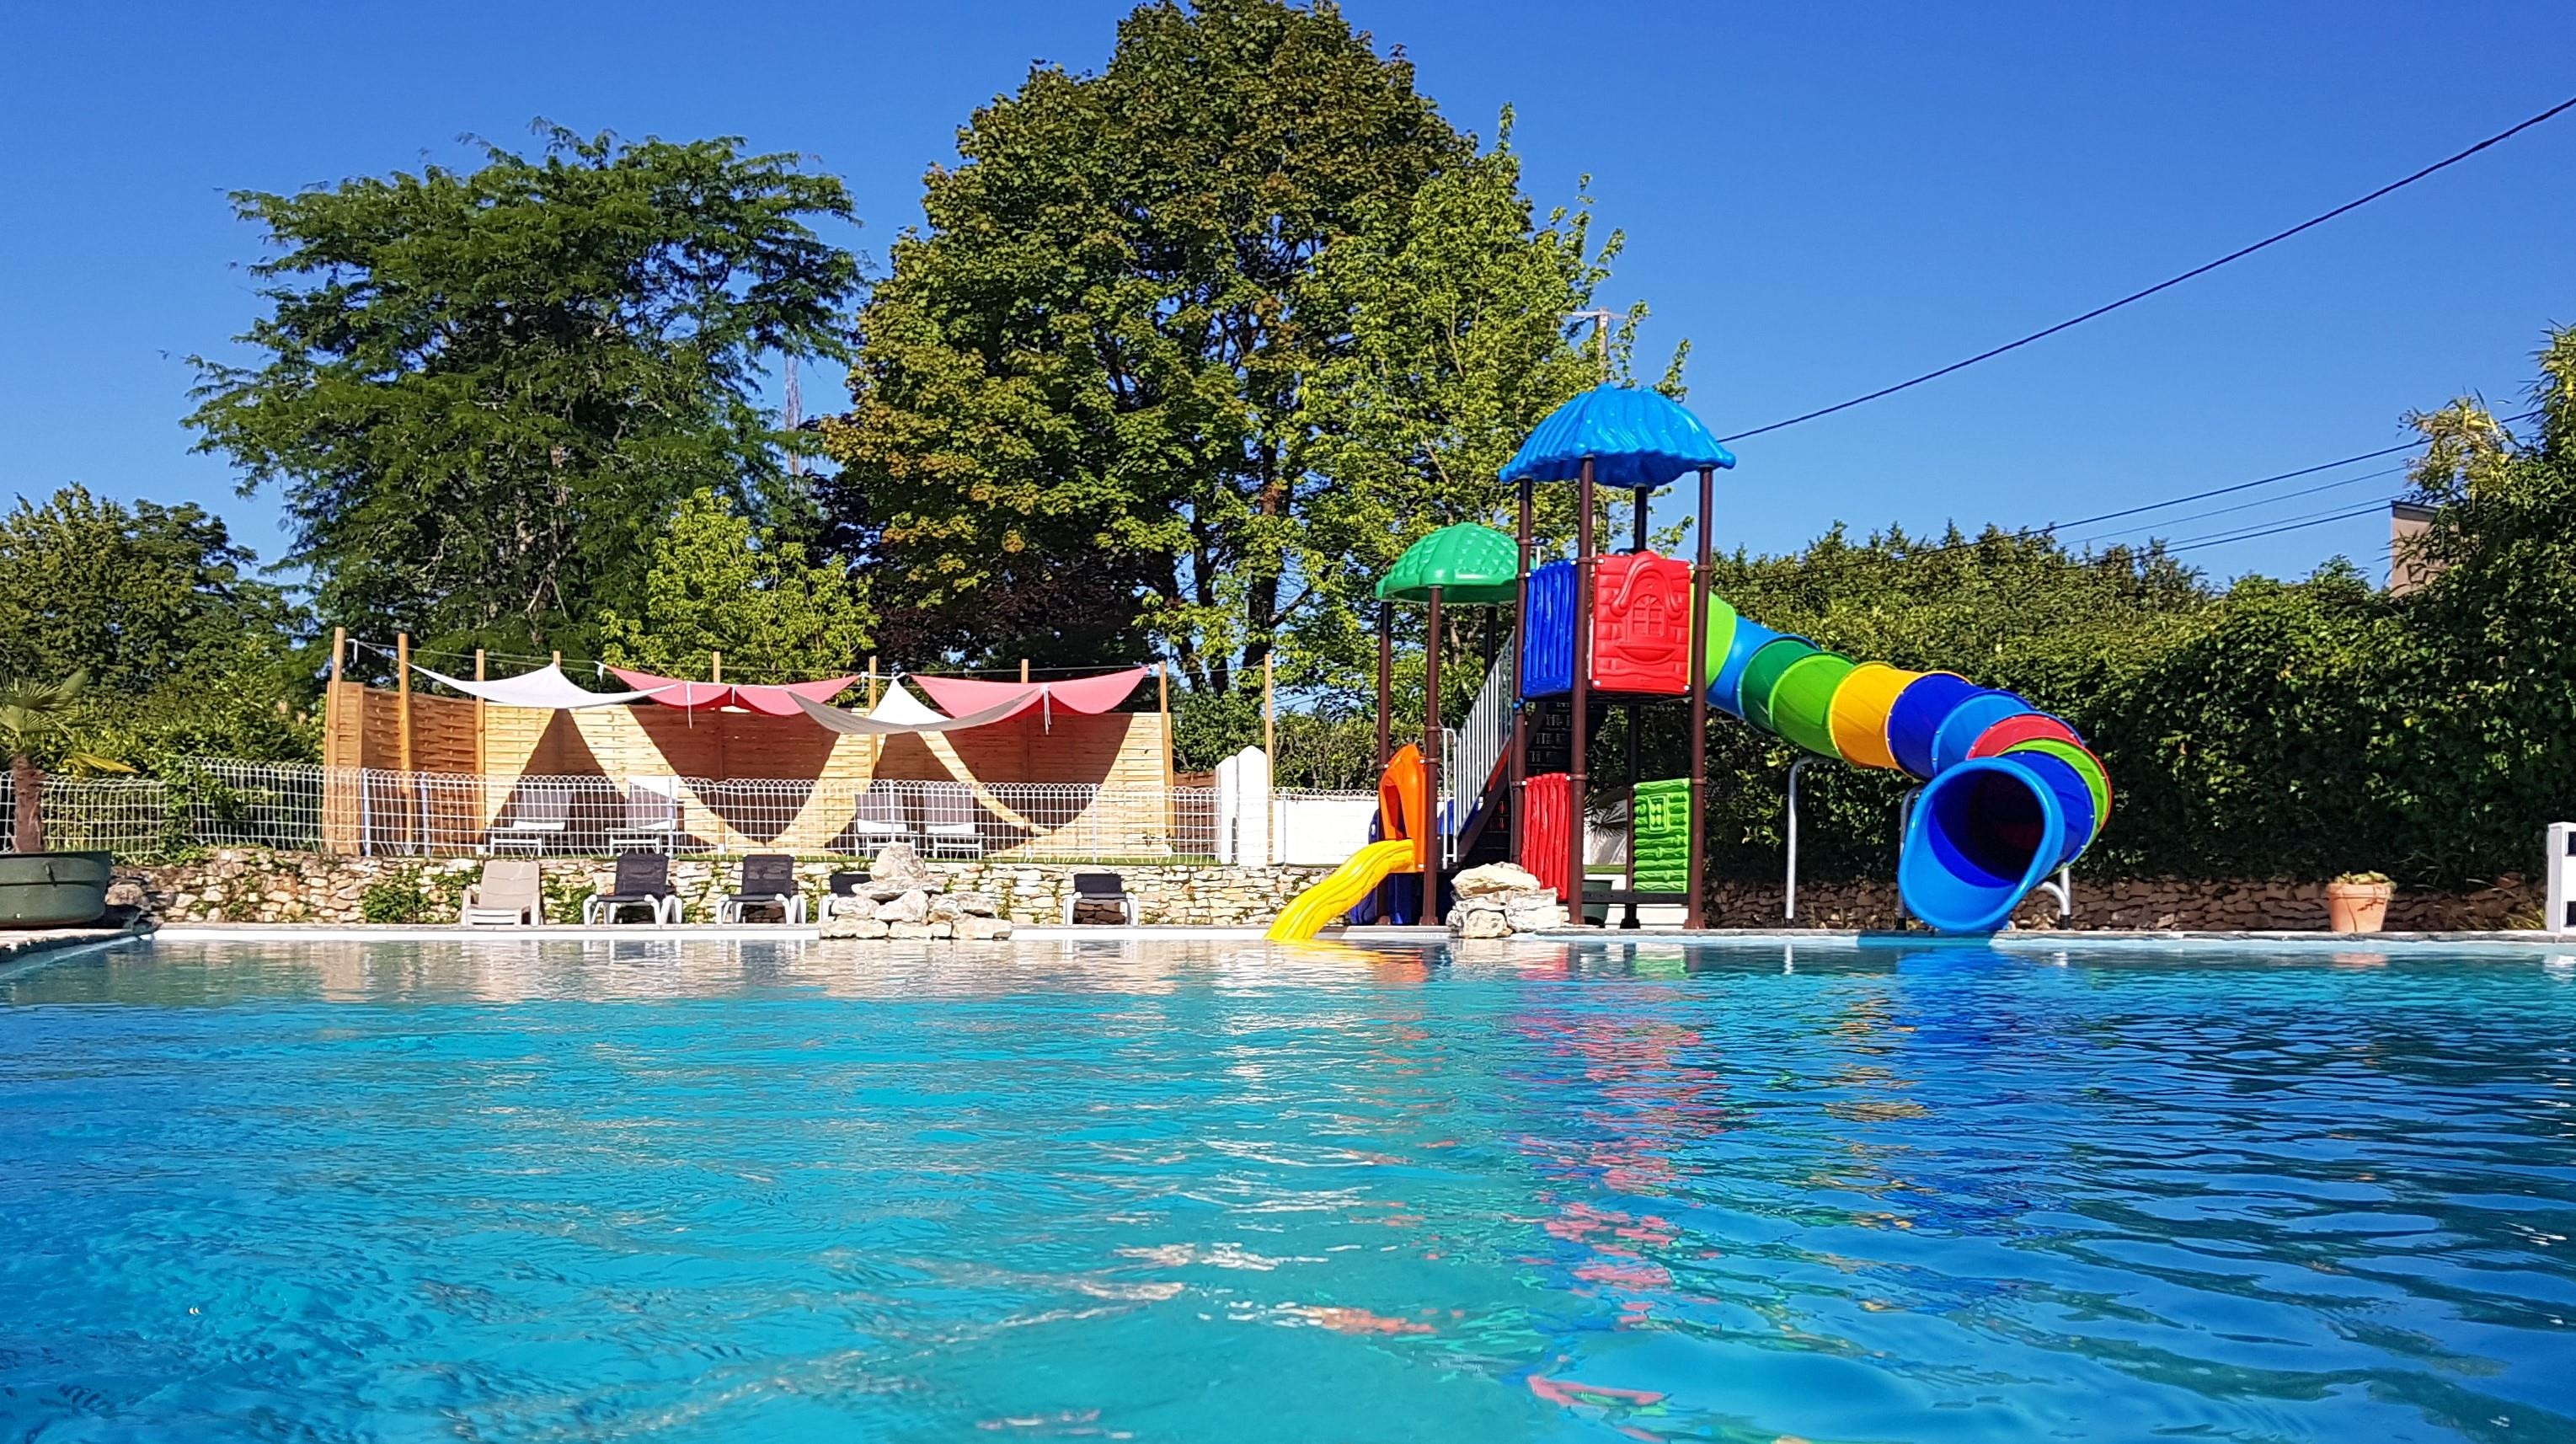 Establishment Camping Bleu Soleil - Rouffignac Saint Cernin